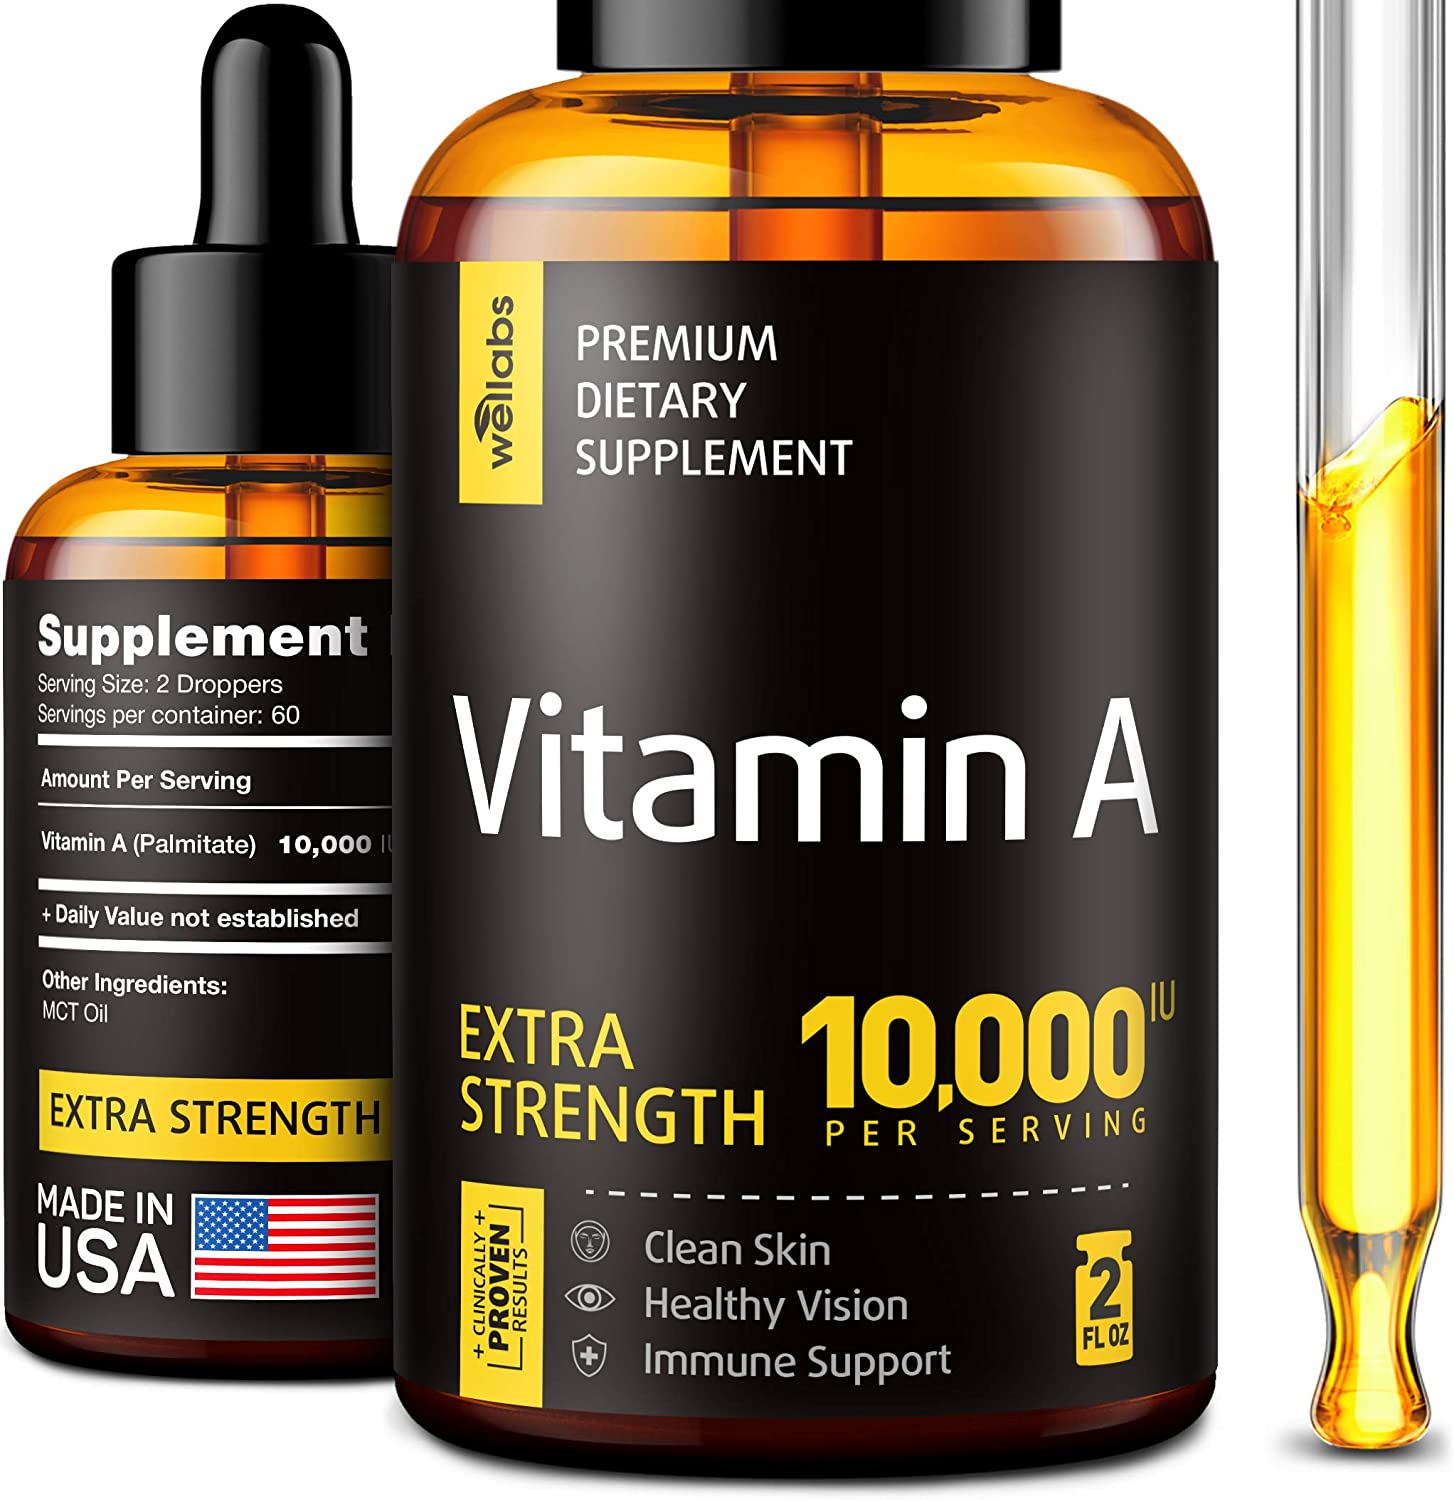 Vitamin A Supplement - Organic Vitamin A Palmitate - Made in The USA - Vitamin A Drops with MCT Oil - Natural Vitamin A 10000 IU for Immunity Support, Clean Skin & Healthy Vision